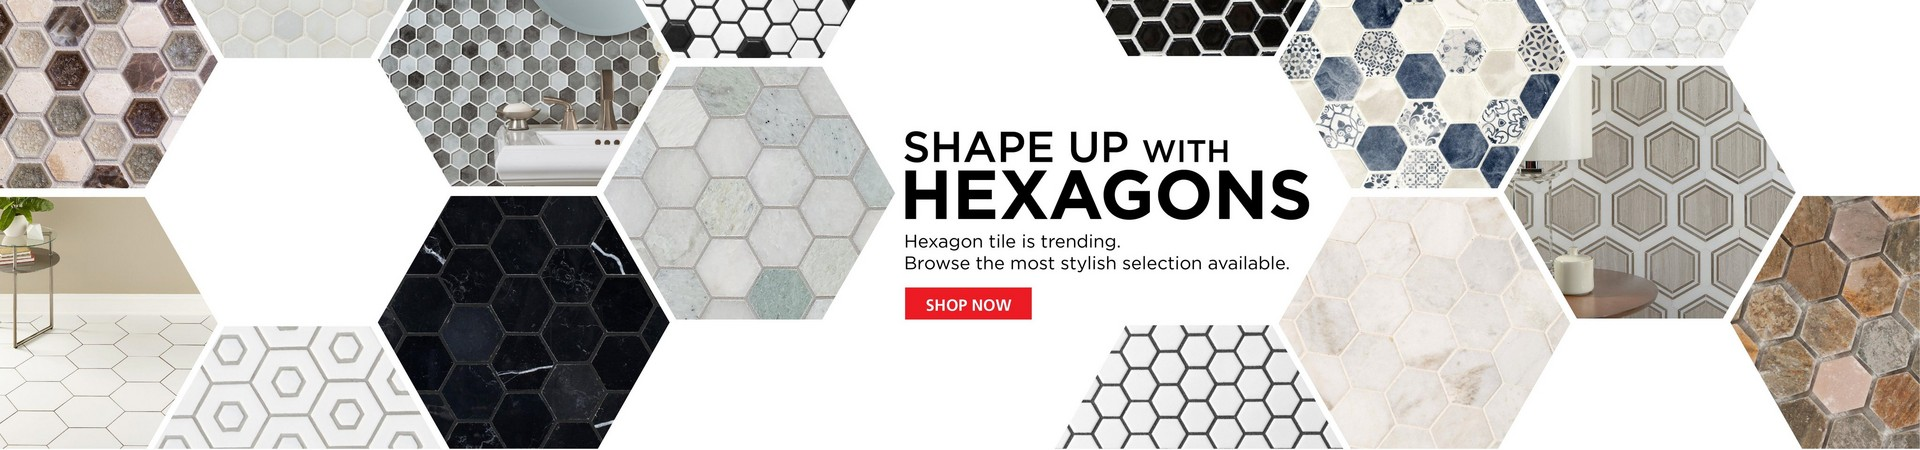 Shape Up with Hexagons